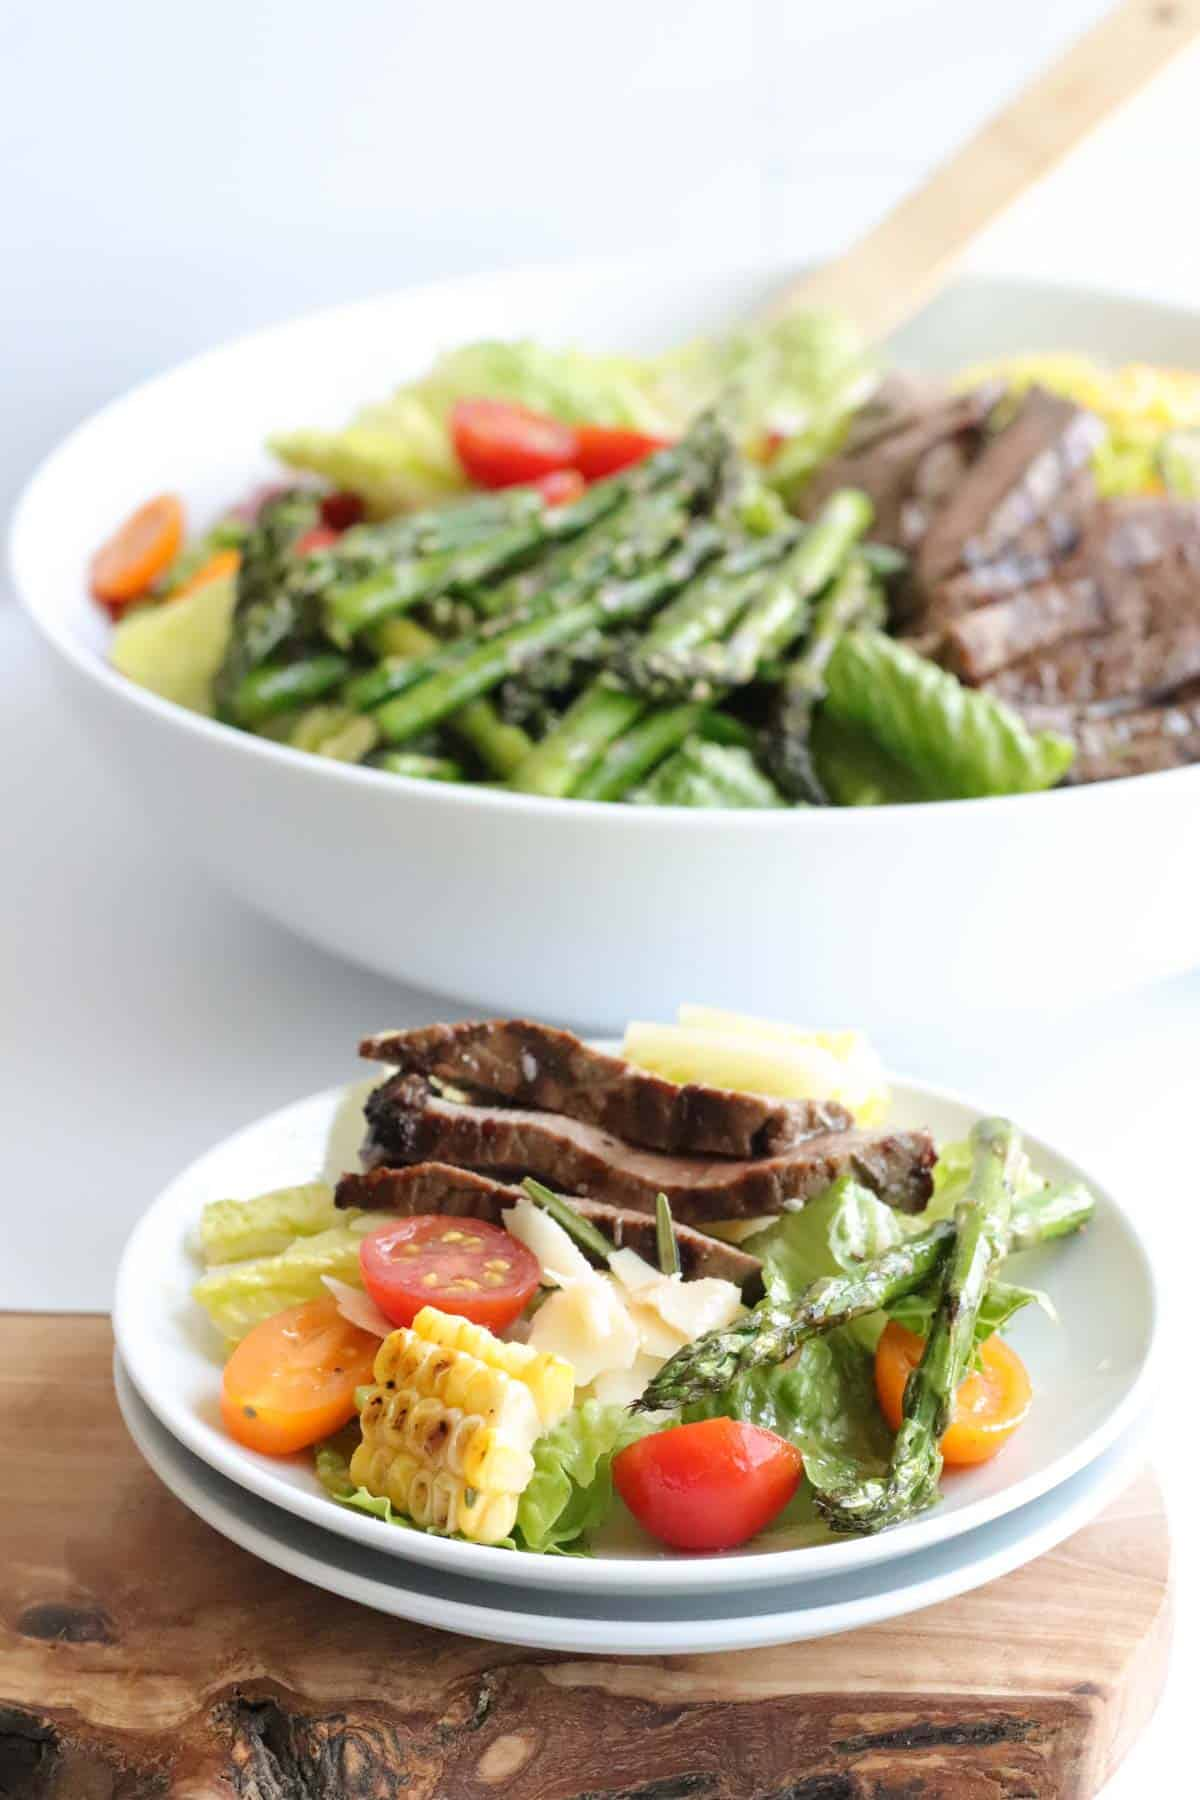 single serving of steak salad on a small while plate in front of the large serving bowl of salad